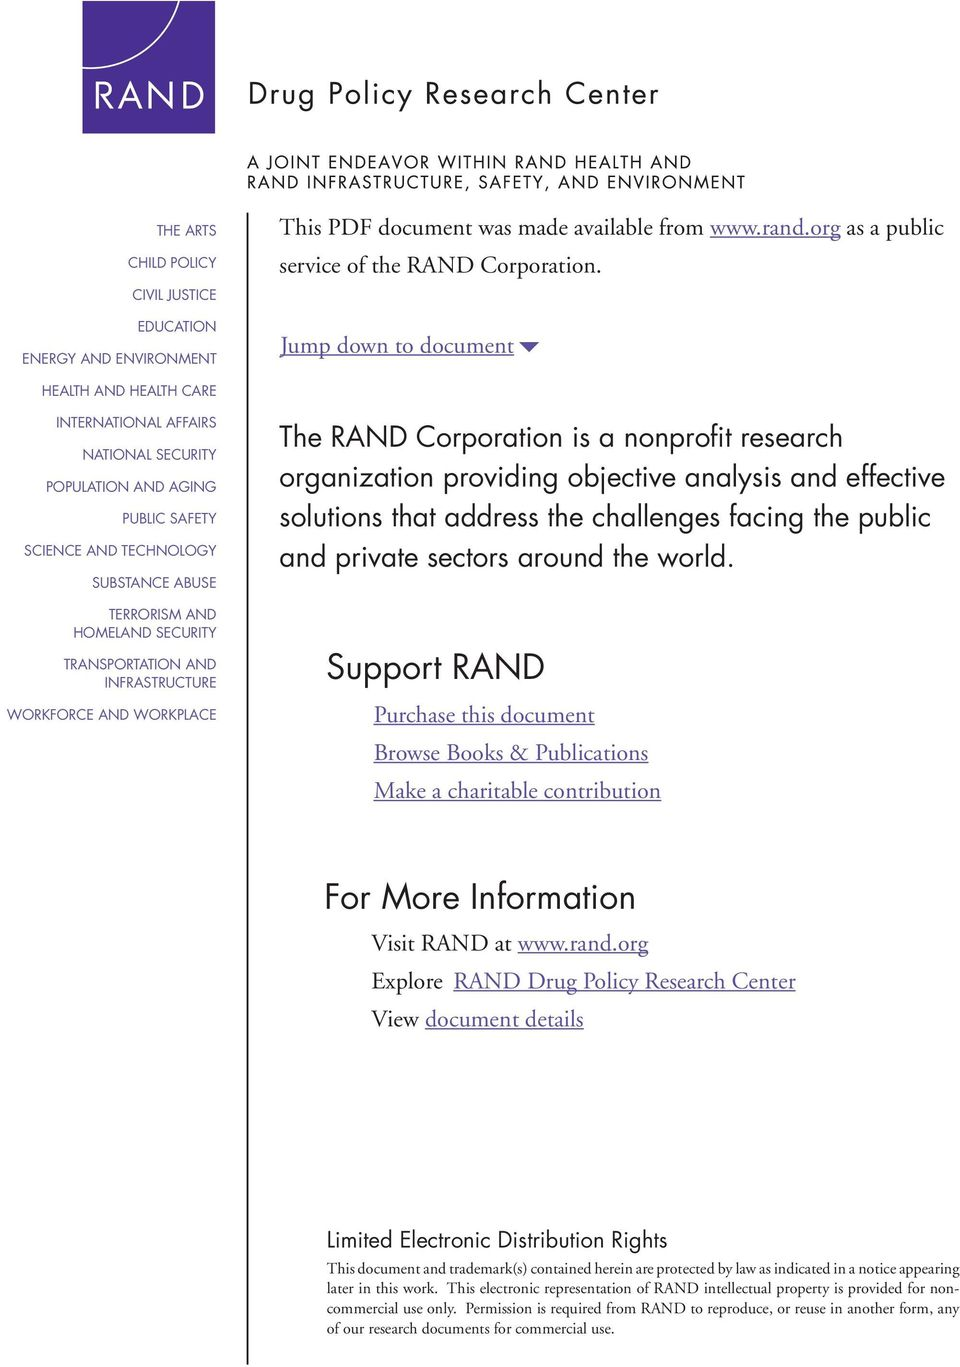 TRANSPORTATION AND INFRASTRUCTURE WORKFORCE AND WORKPLACE The RAND Corporation is a nonprofit research organization providing objective analysis and effective solutions that address the challenges